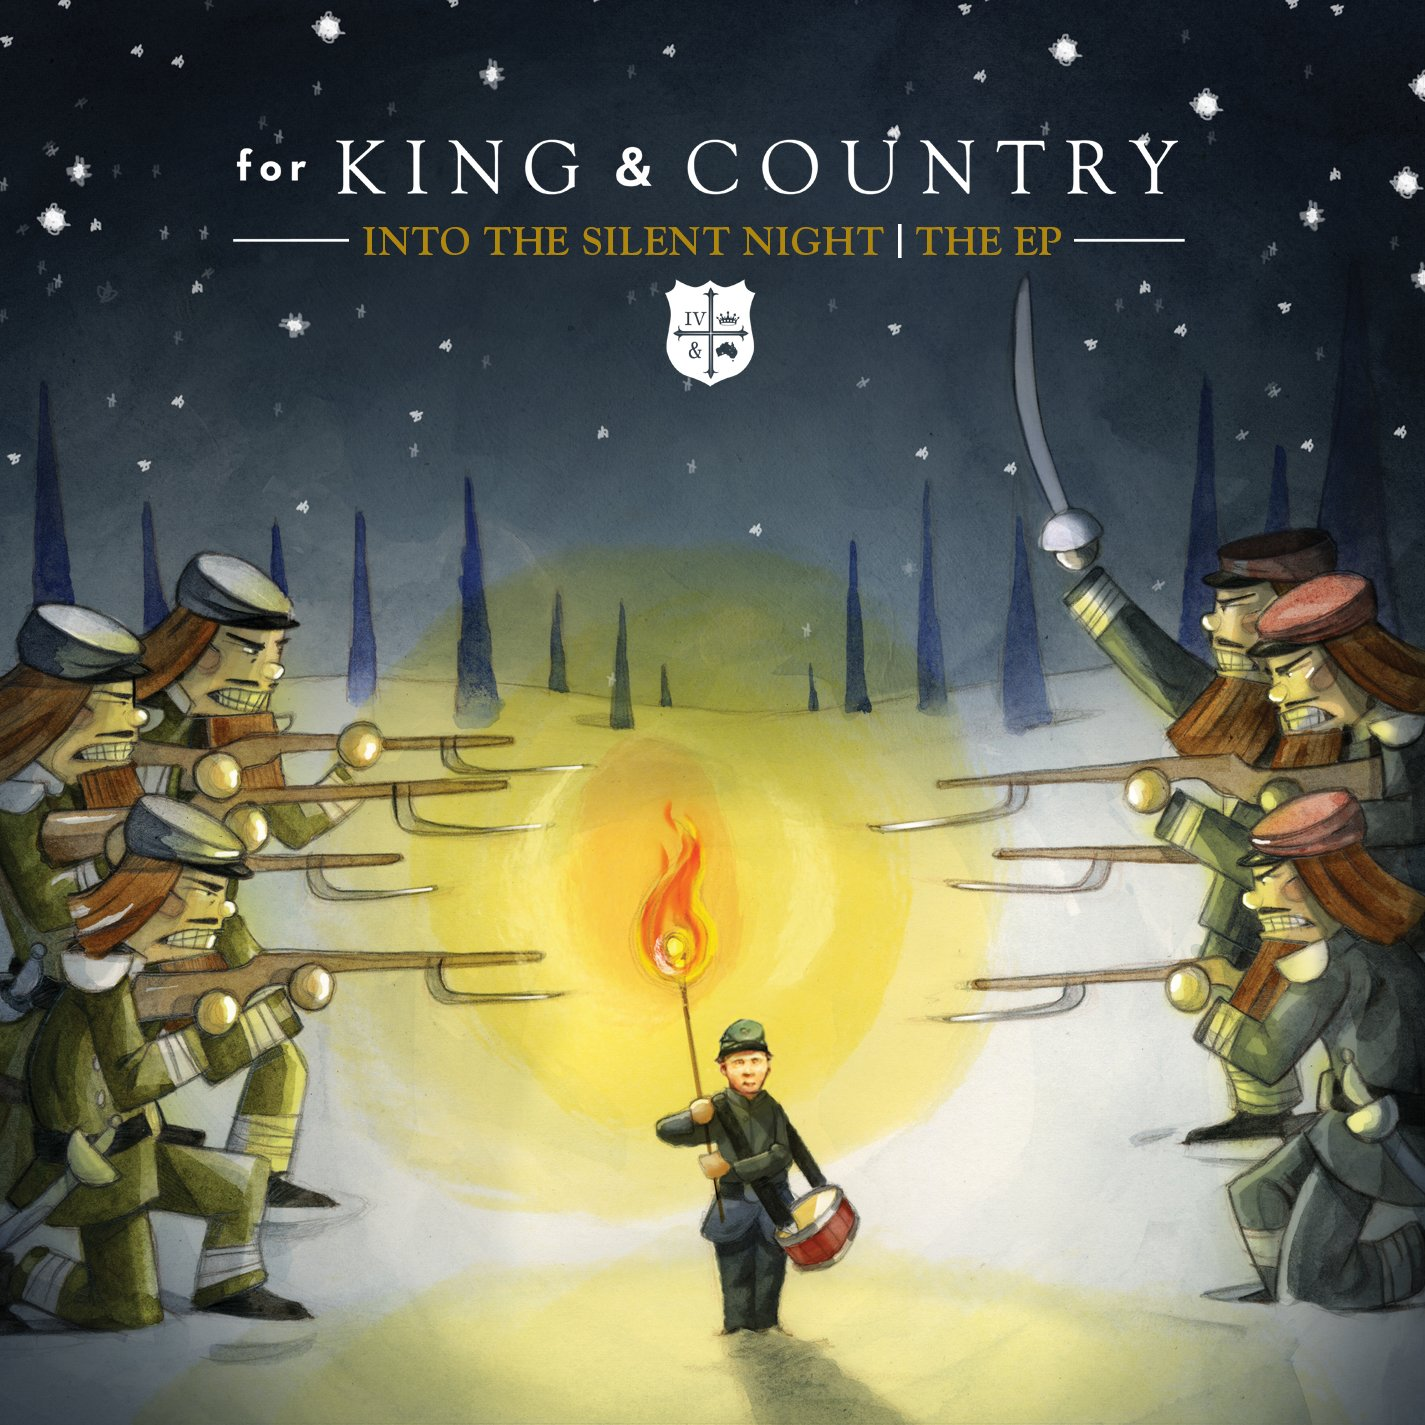 for king country into the silent night ep amazoncom music - For King And Country Christmas Album